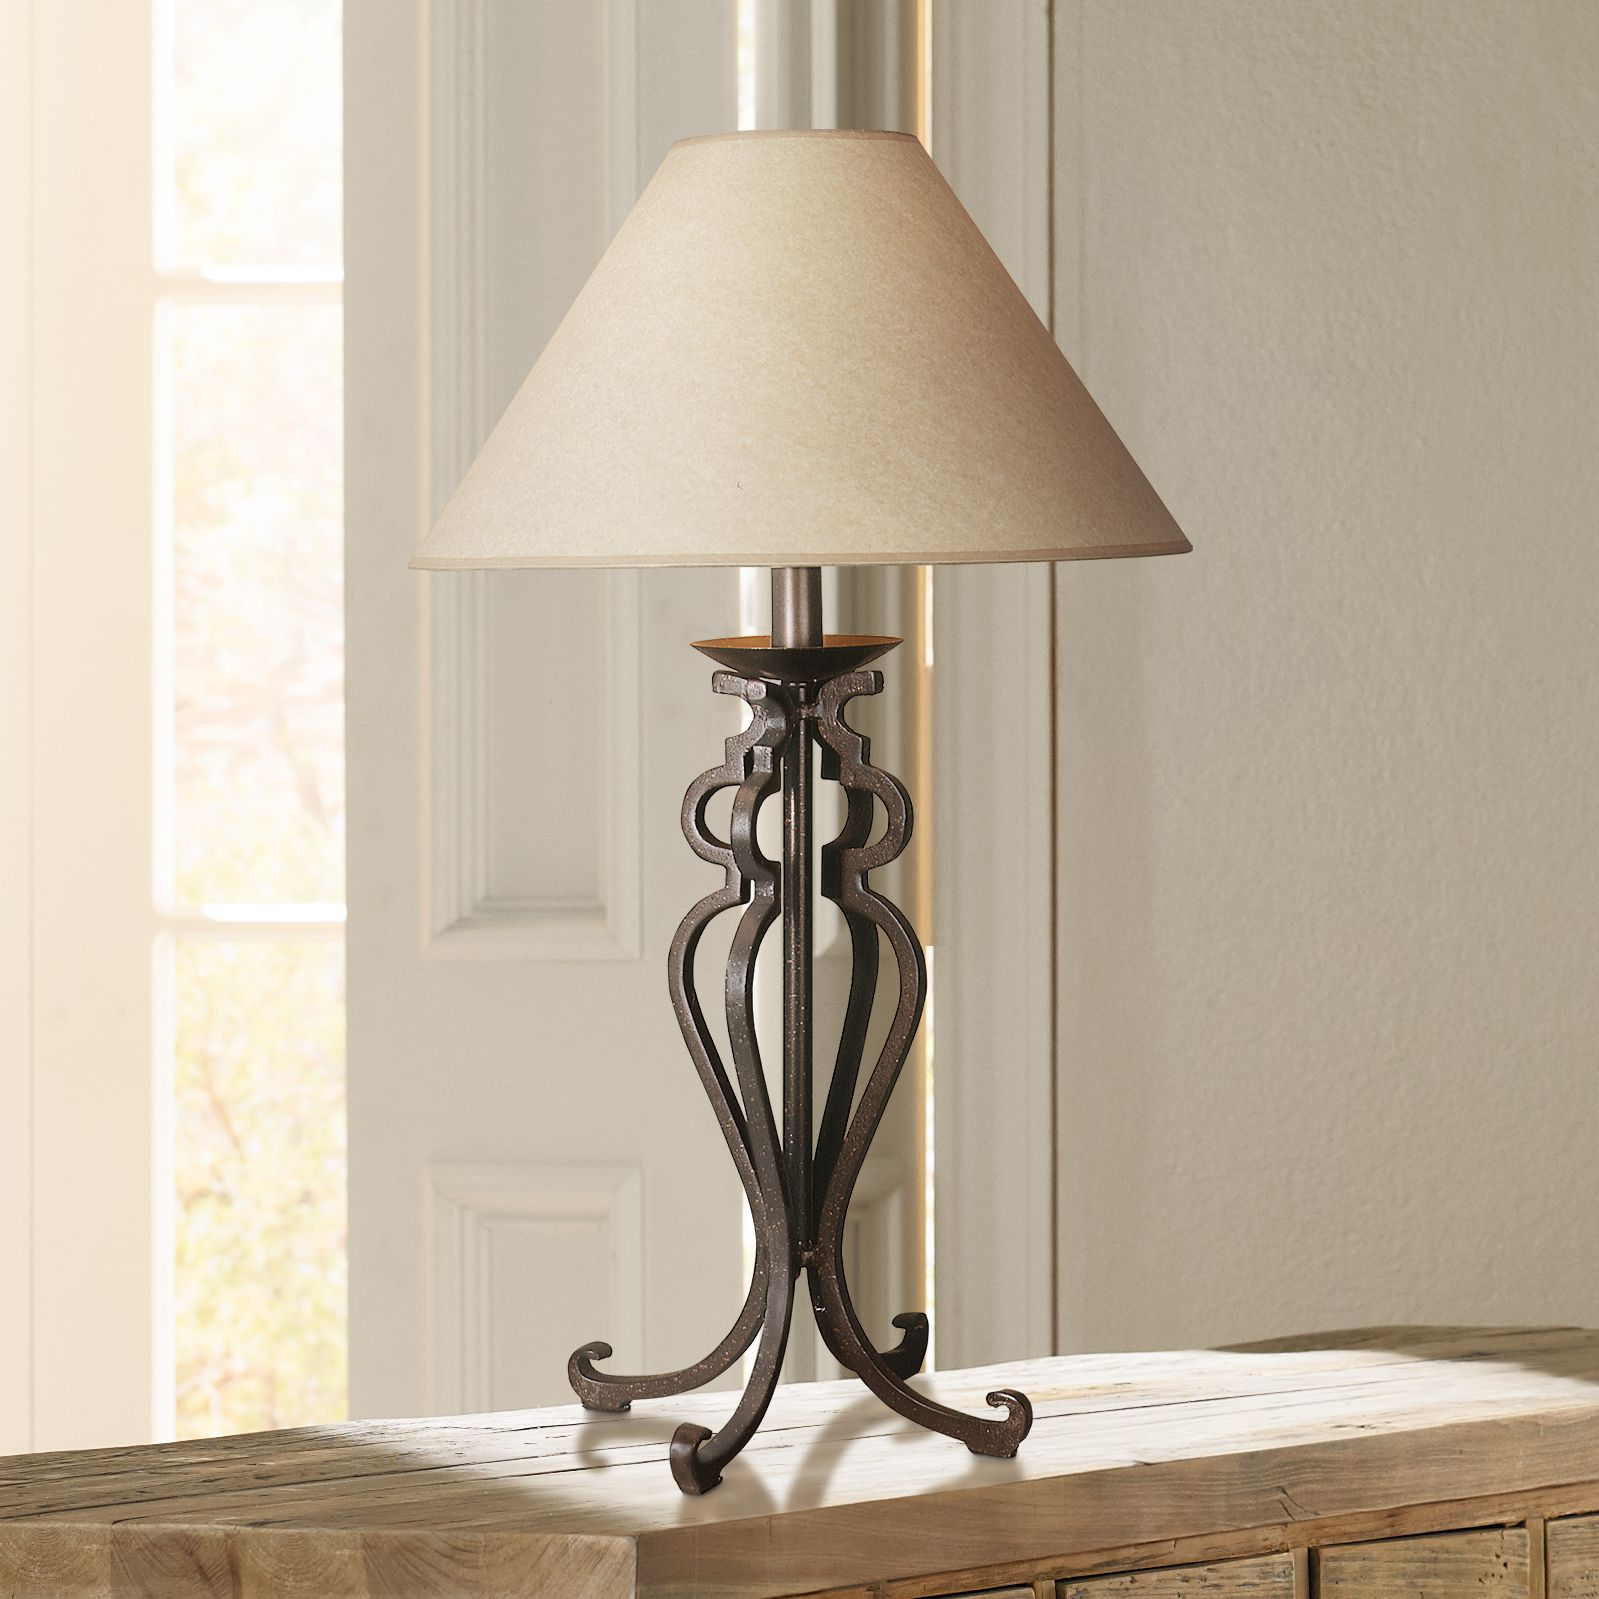 Attirant Open Scroll Rustic Wrought Iron Table Lamp